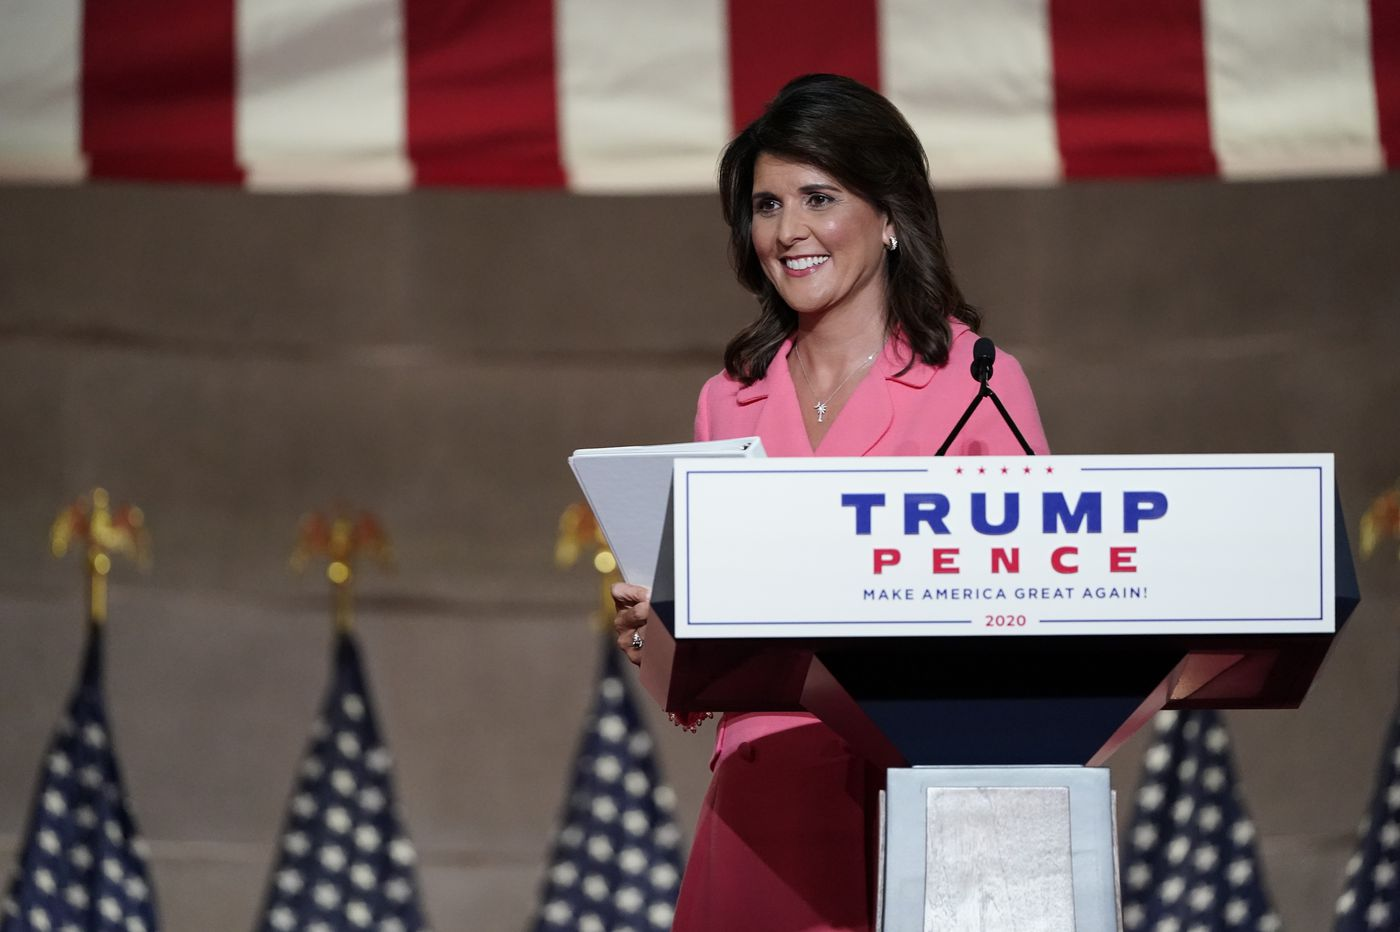 Nikki Haley said at the RNC that Joe Biden wants 'massive' tax hikes on working families. That's not true.